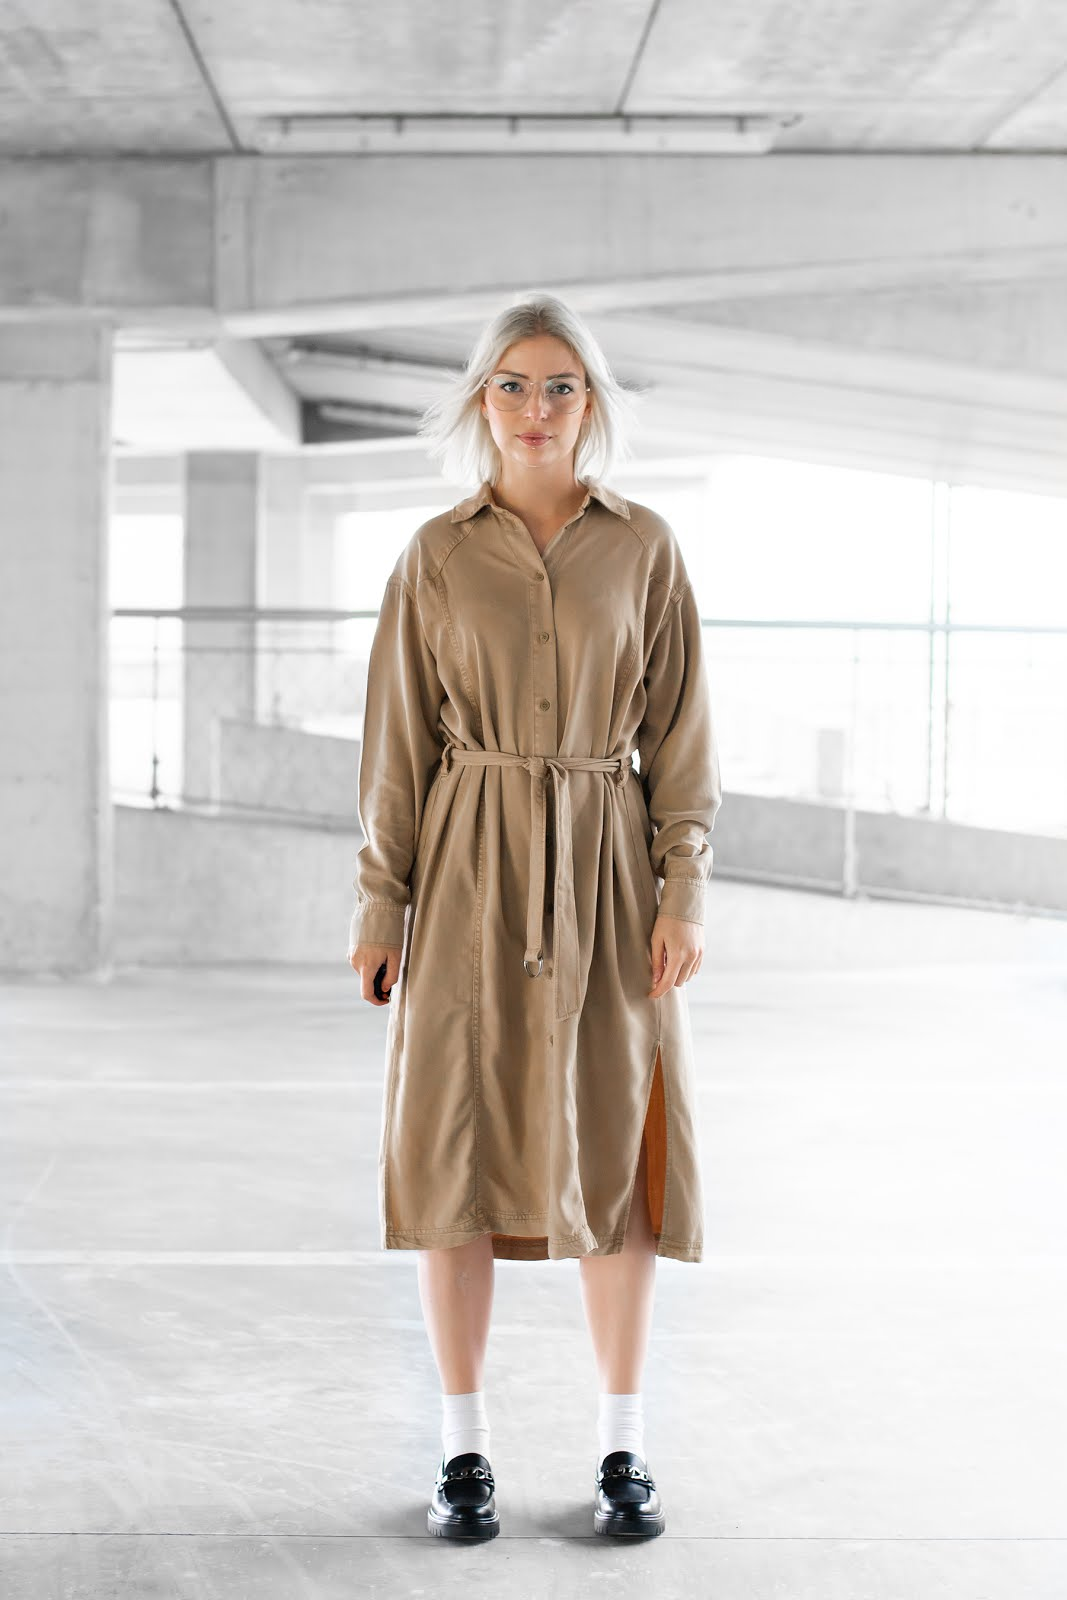 Chunky loafers, sacha shoes, edgy dress, weekday, jurk, casual, oversized, minimal, street style